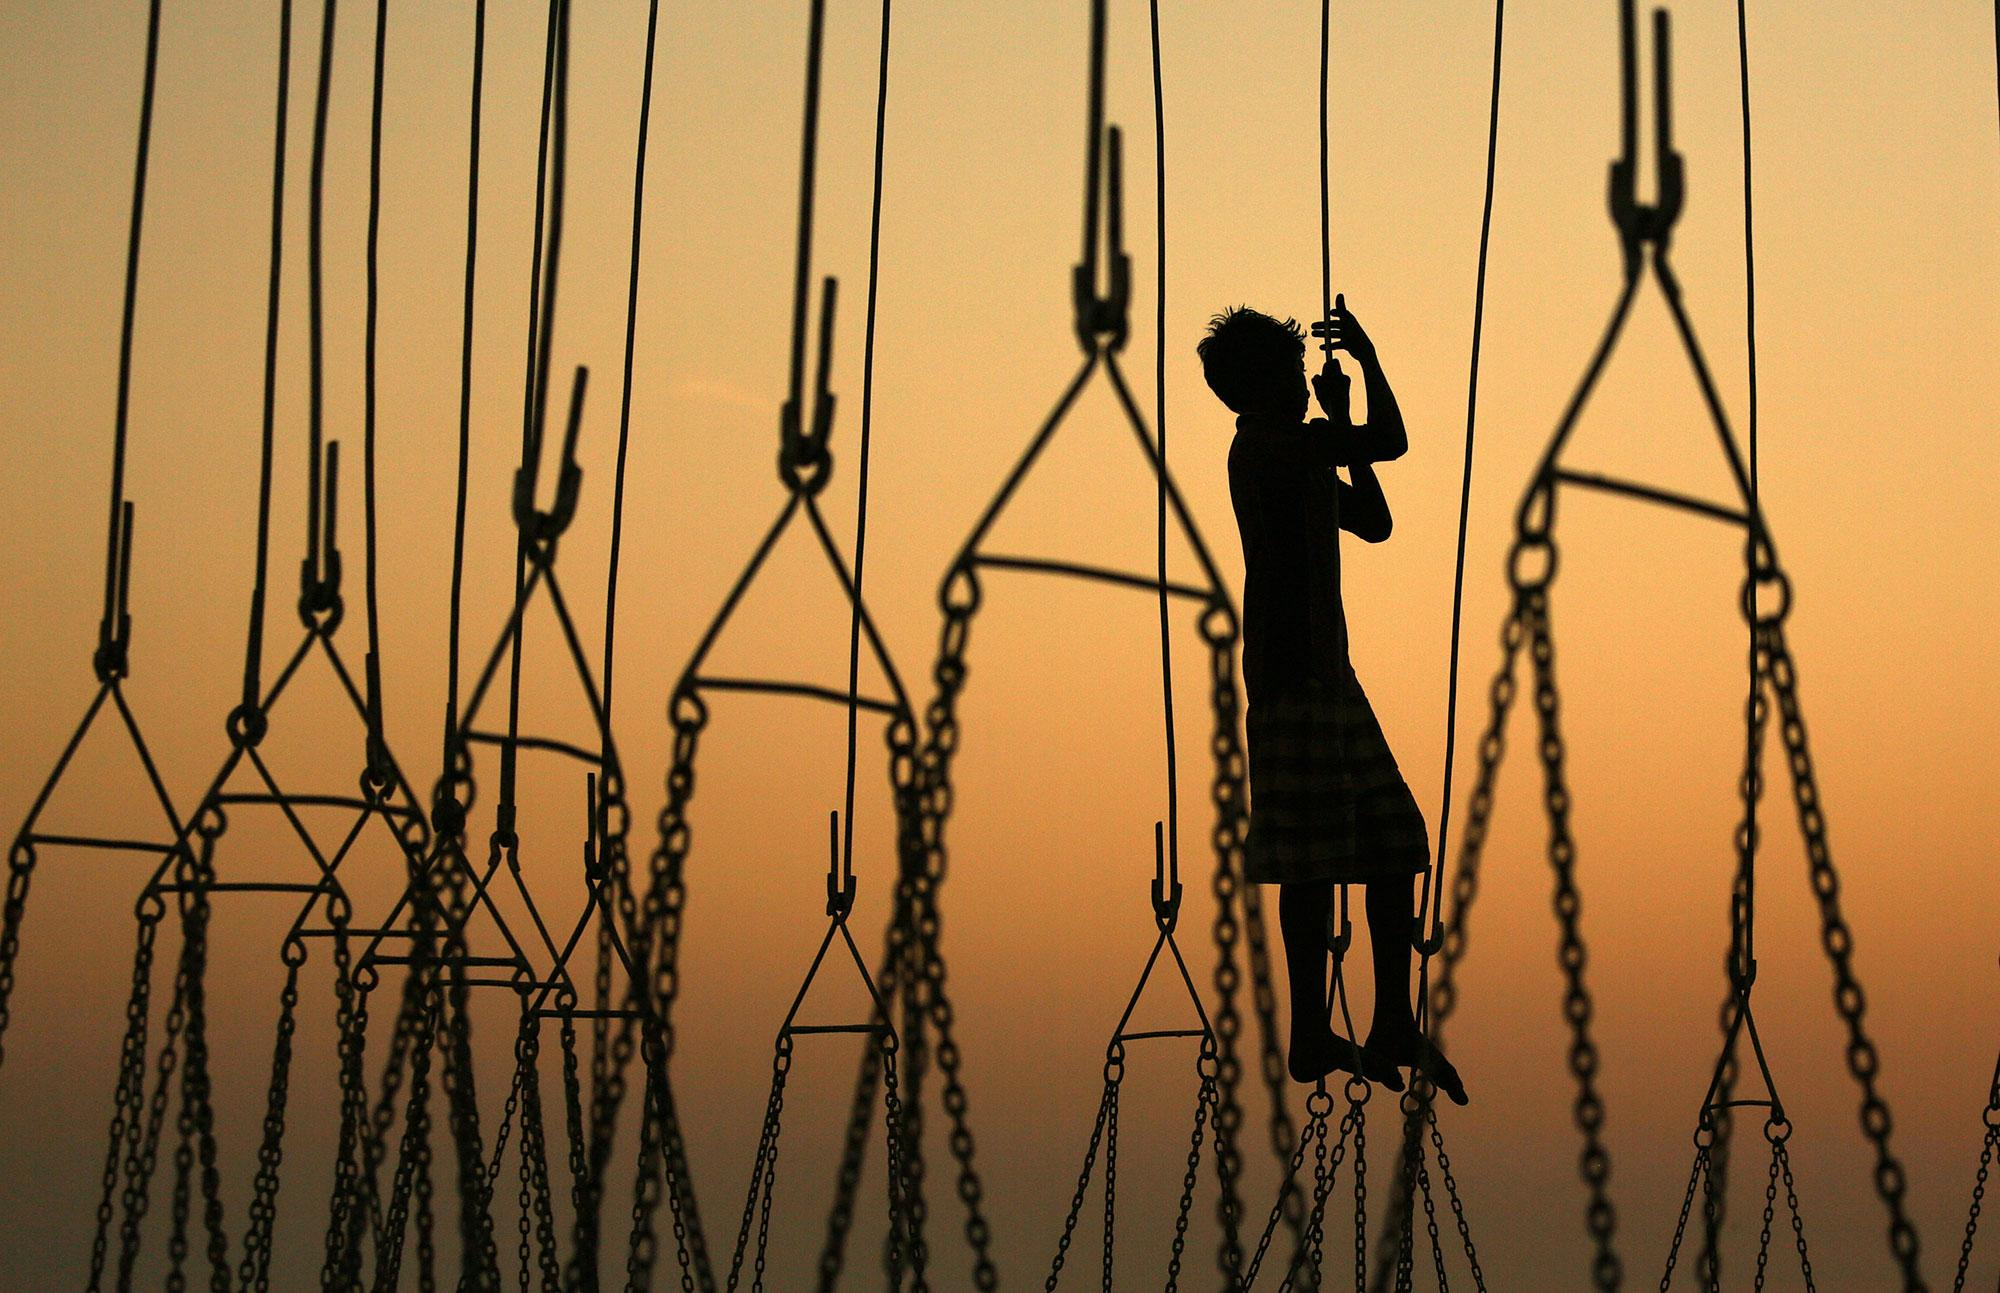 <p>An Indian boy plays with the carnival rides as he waits for customers in an amusement park during the annual Mahim Fair in Mumbai, India on Dec. 19, 2016. The ten-day fair features giant wheels, toy trains and gravity-defying stunts in the 'Maut Ka Kuan' or 'Well of Death' in honor of the Sufi saint Makhdoom Ali Mahimi. (Photo: Divyakant Solanki/EPA) </p>